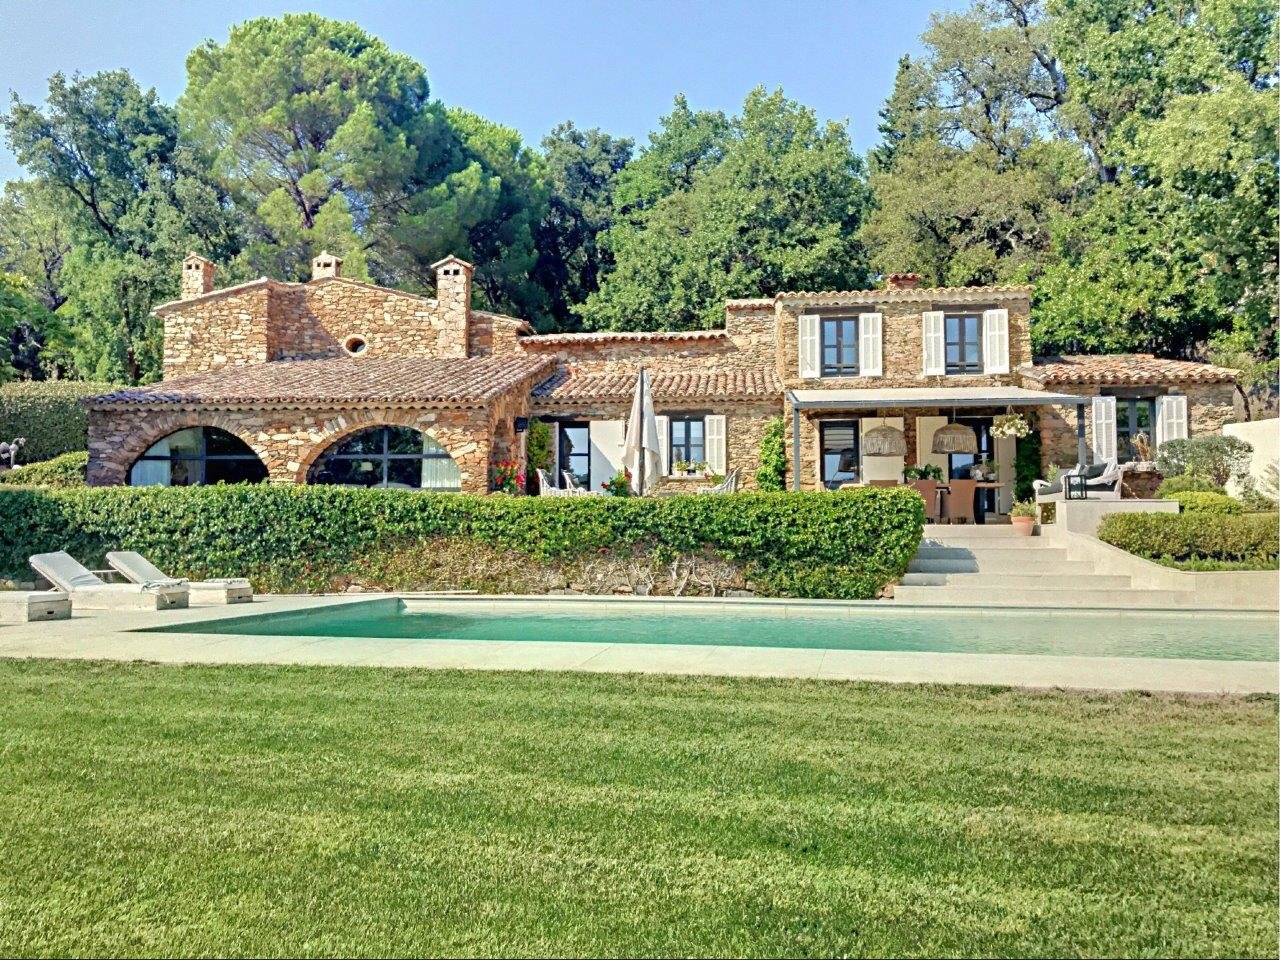 Beautifully renovated 19th century bastide in quiet area